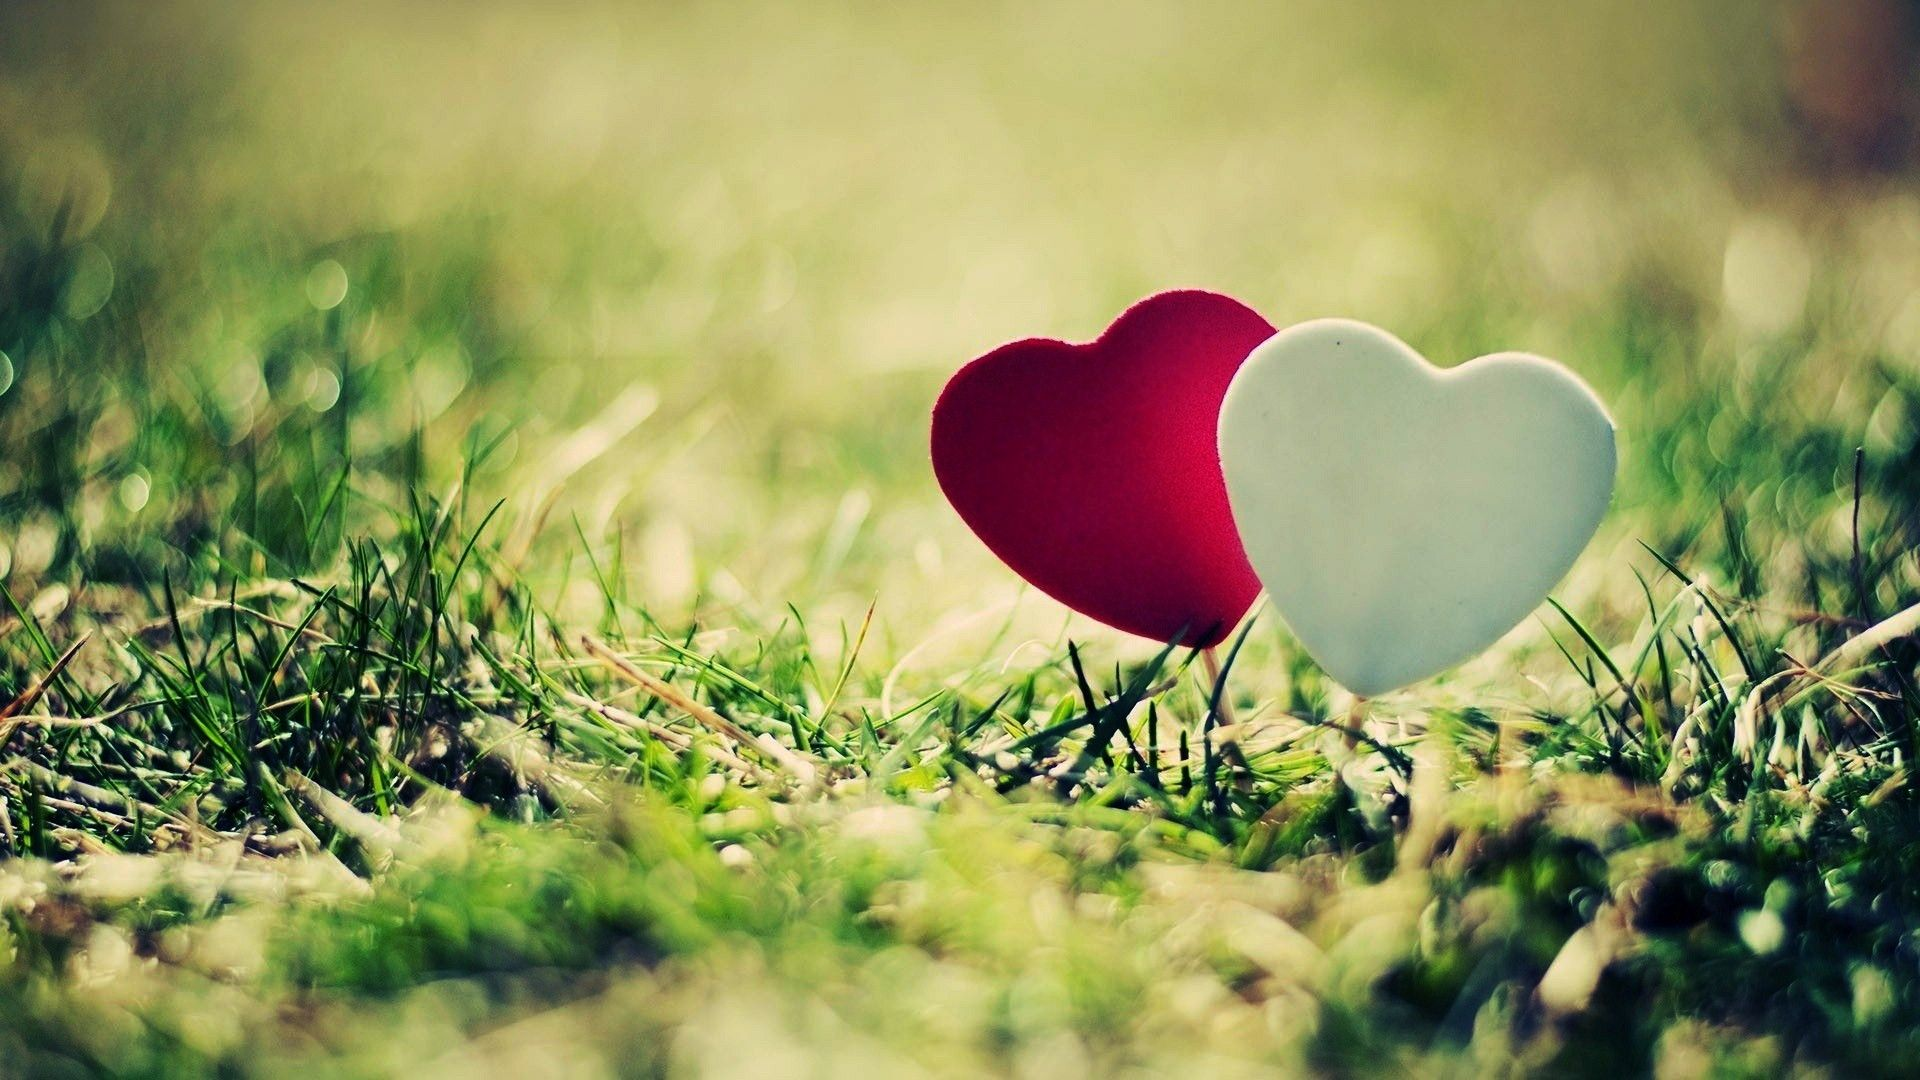 Beautiful Love Wallpaper Hd: Love And Heart Wallpapers Free Download HD Latest